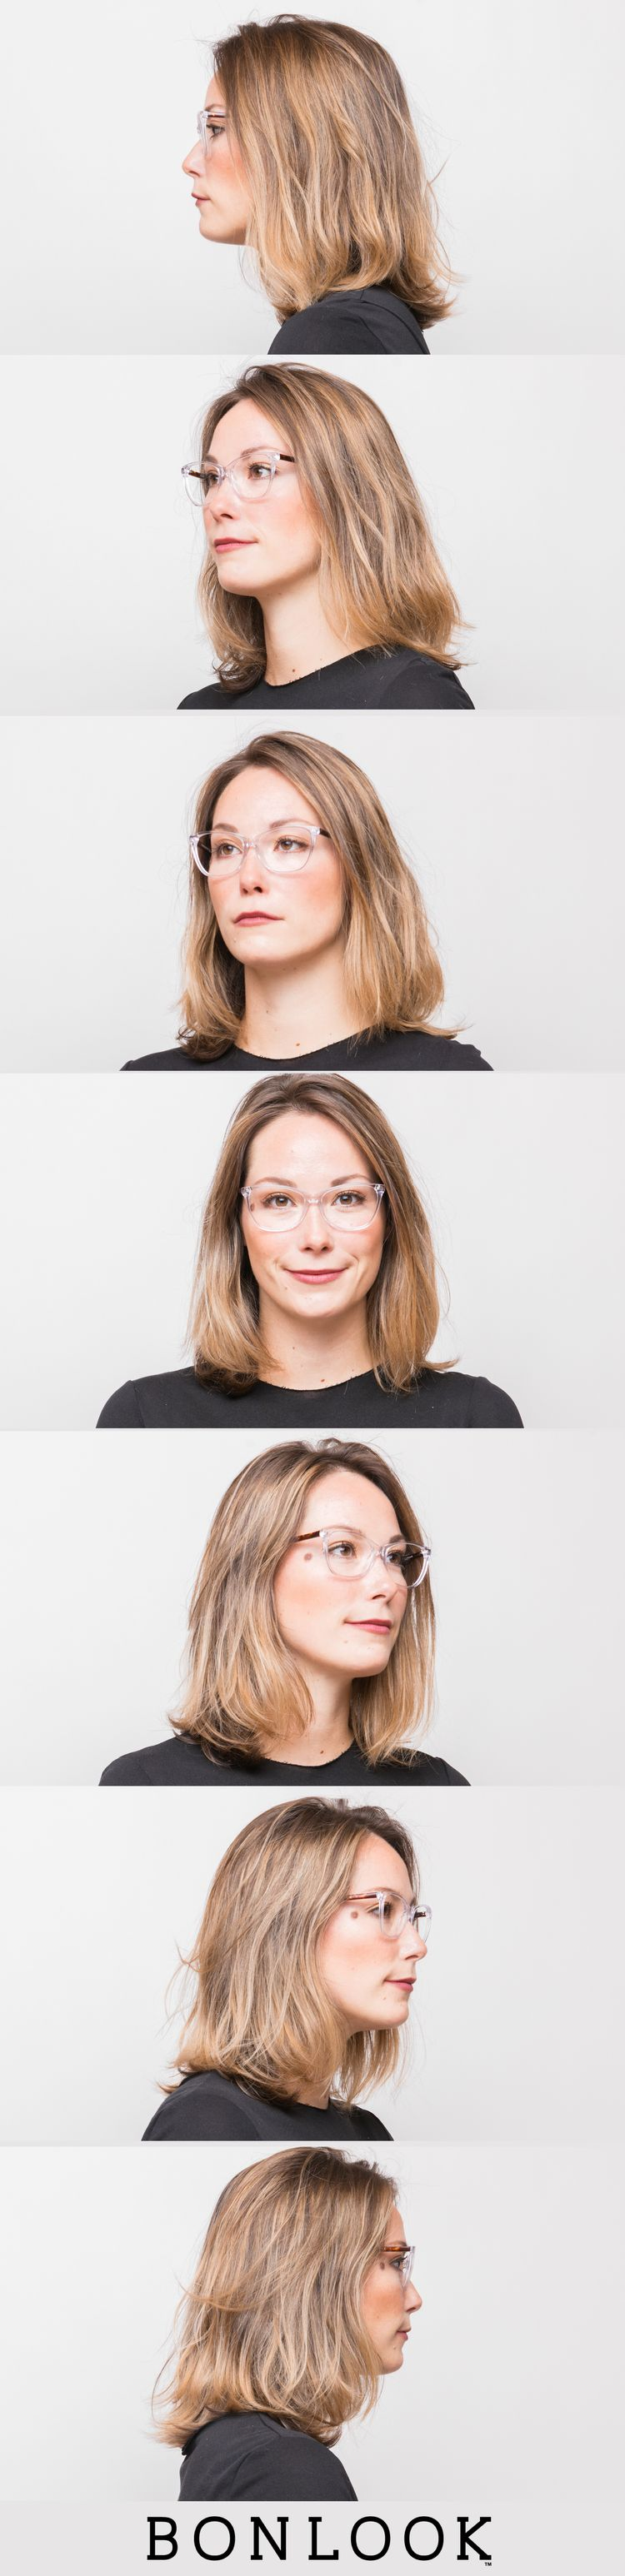 Flair is the perfect eyewear for the one's that have a natural instinct for fashion. Versatile and trendy, these frames will fit every face shape with elegance.